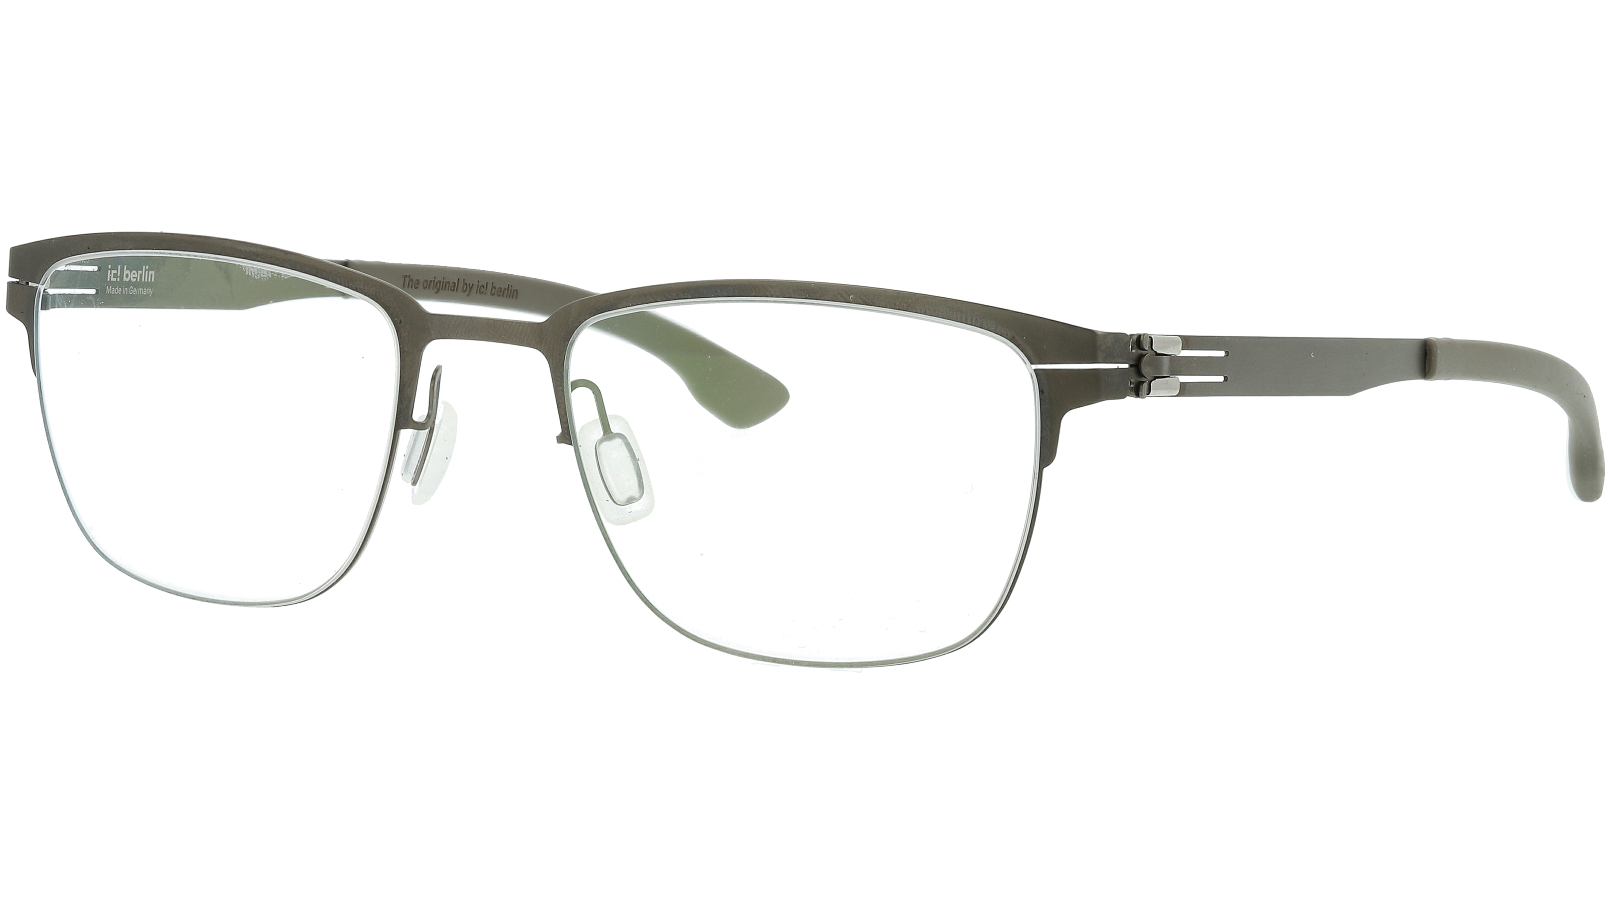 IC BERLIN! The Lone Wolf Graphite Grey Glasses